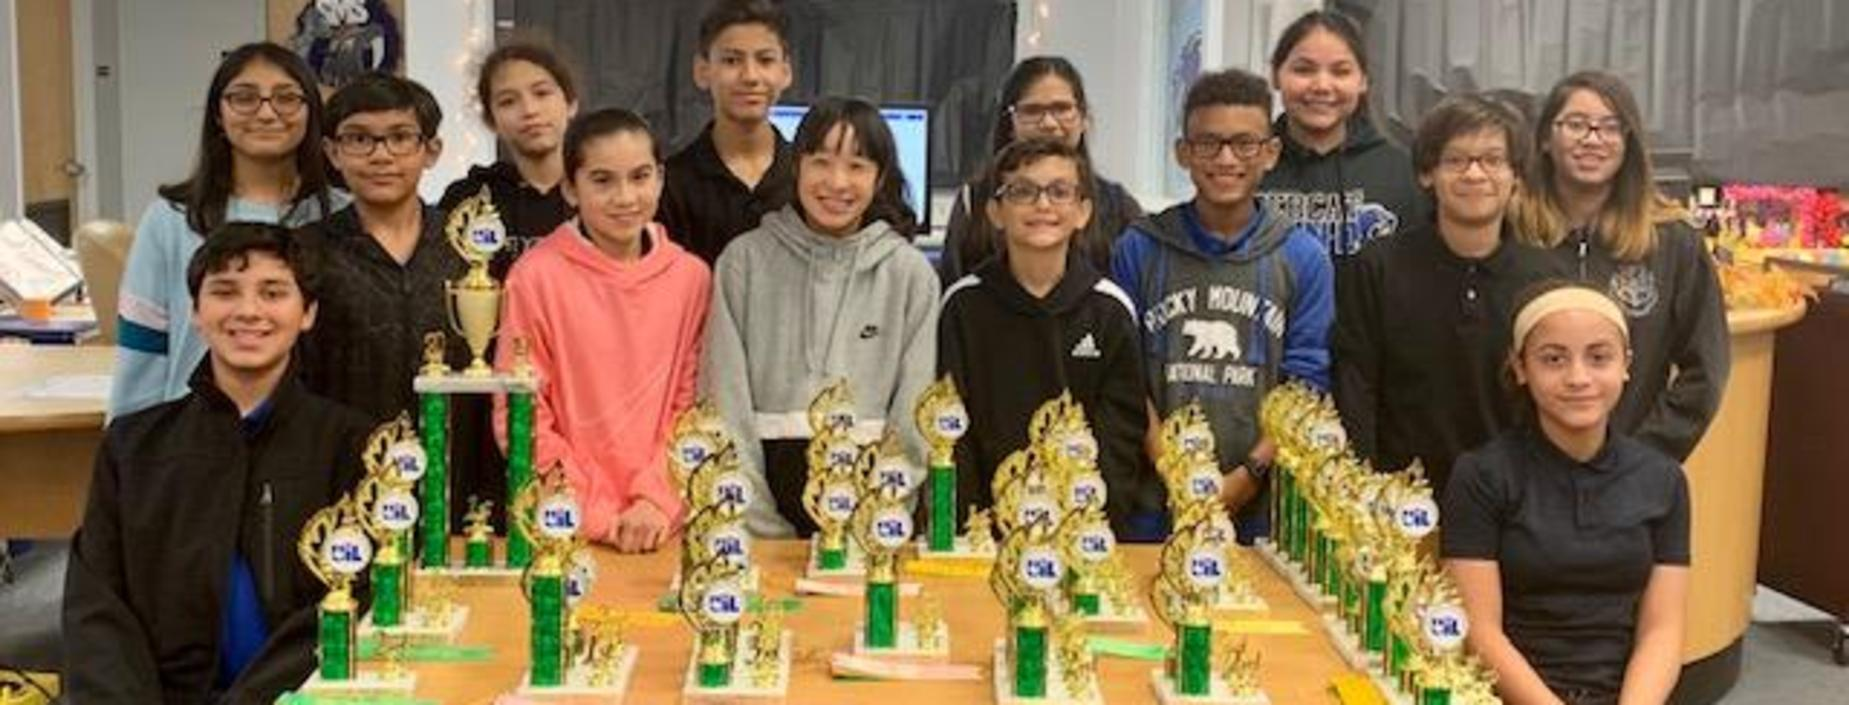 7th Grade UIL wins 1st place